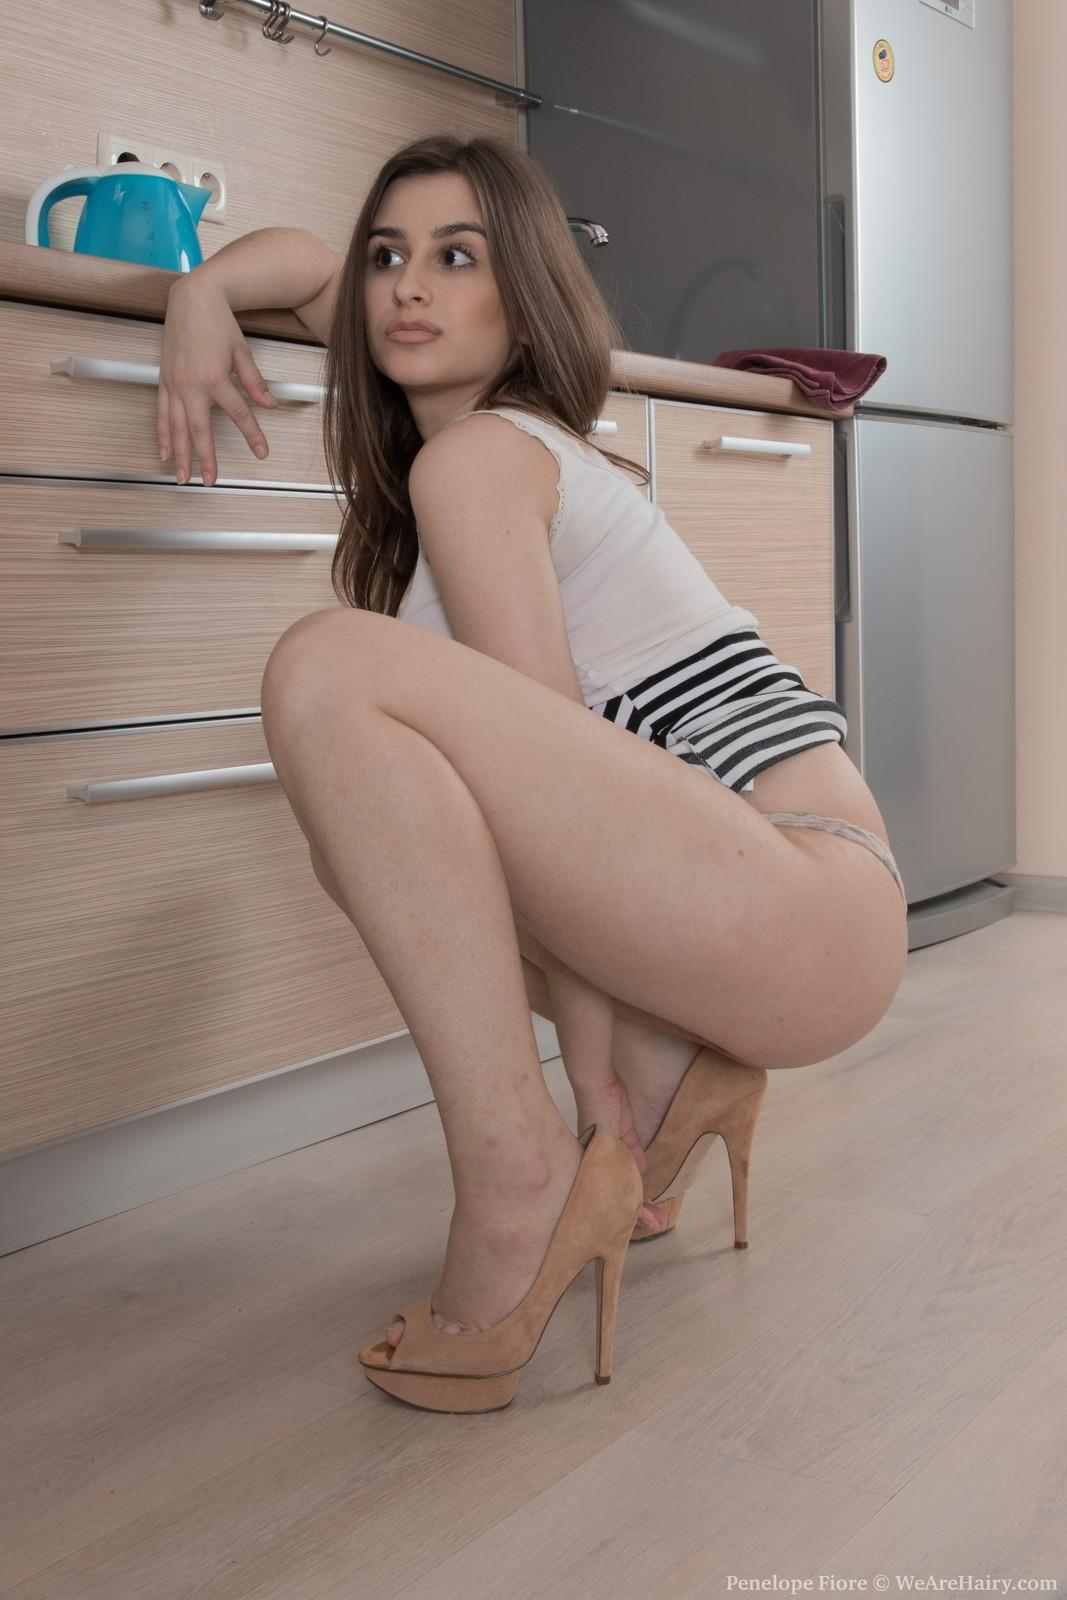 Amateur solo female Penelope Fiore flaunts her hairy snatch in the kitchen